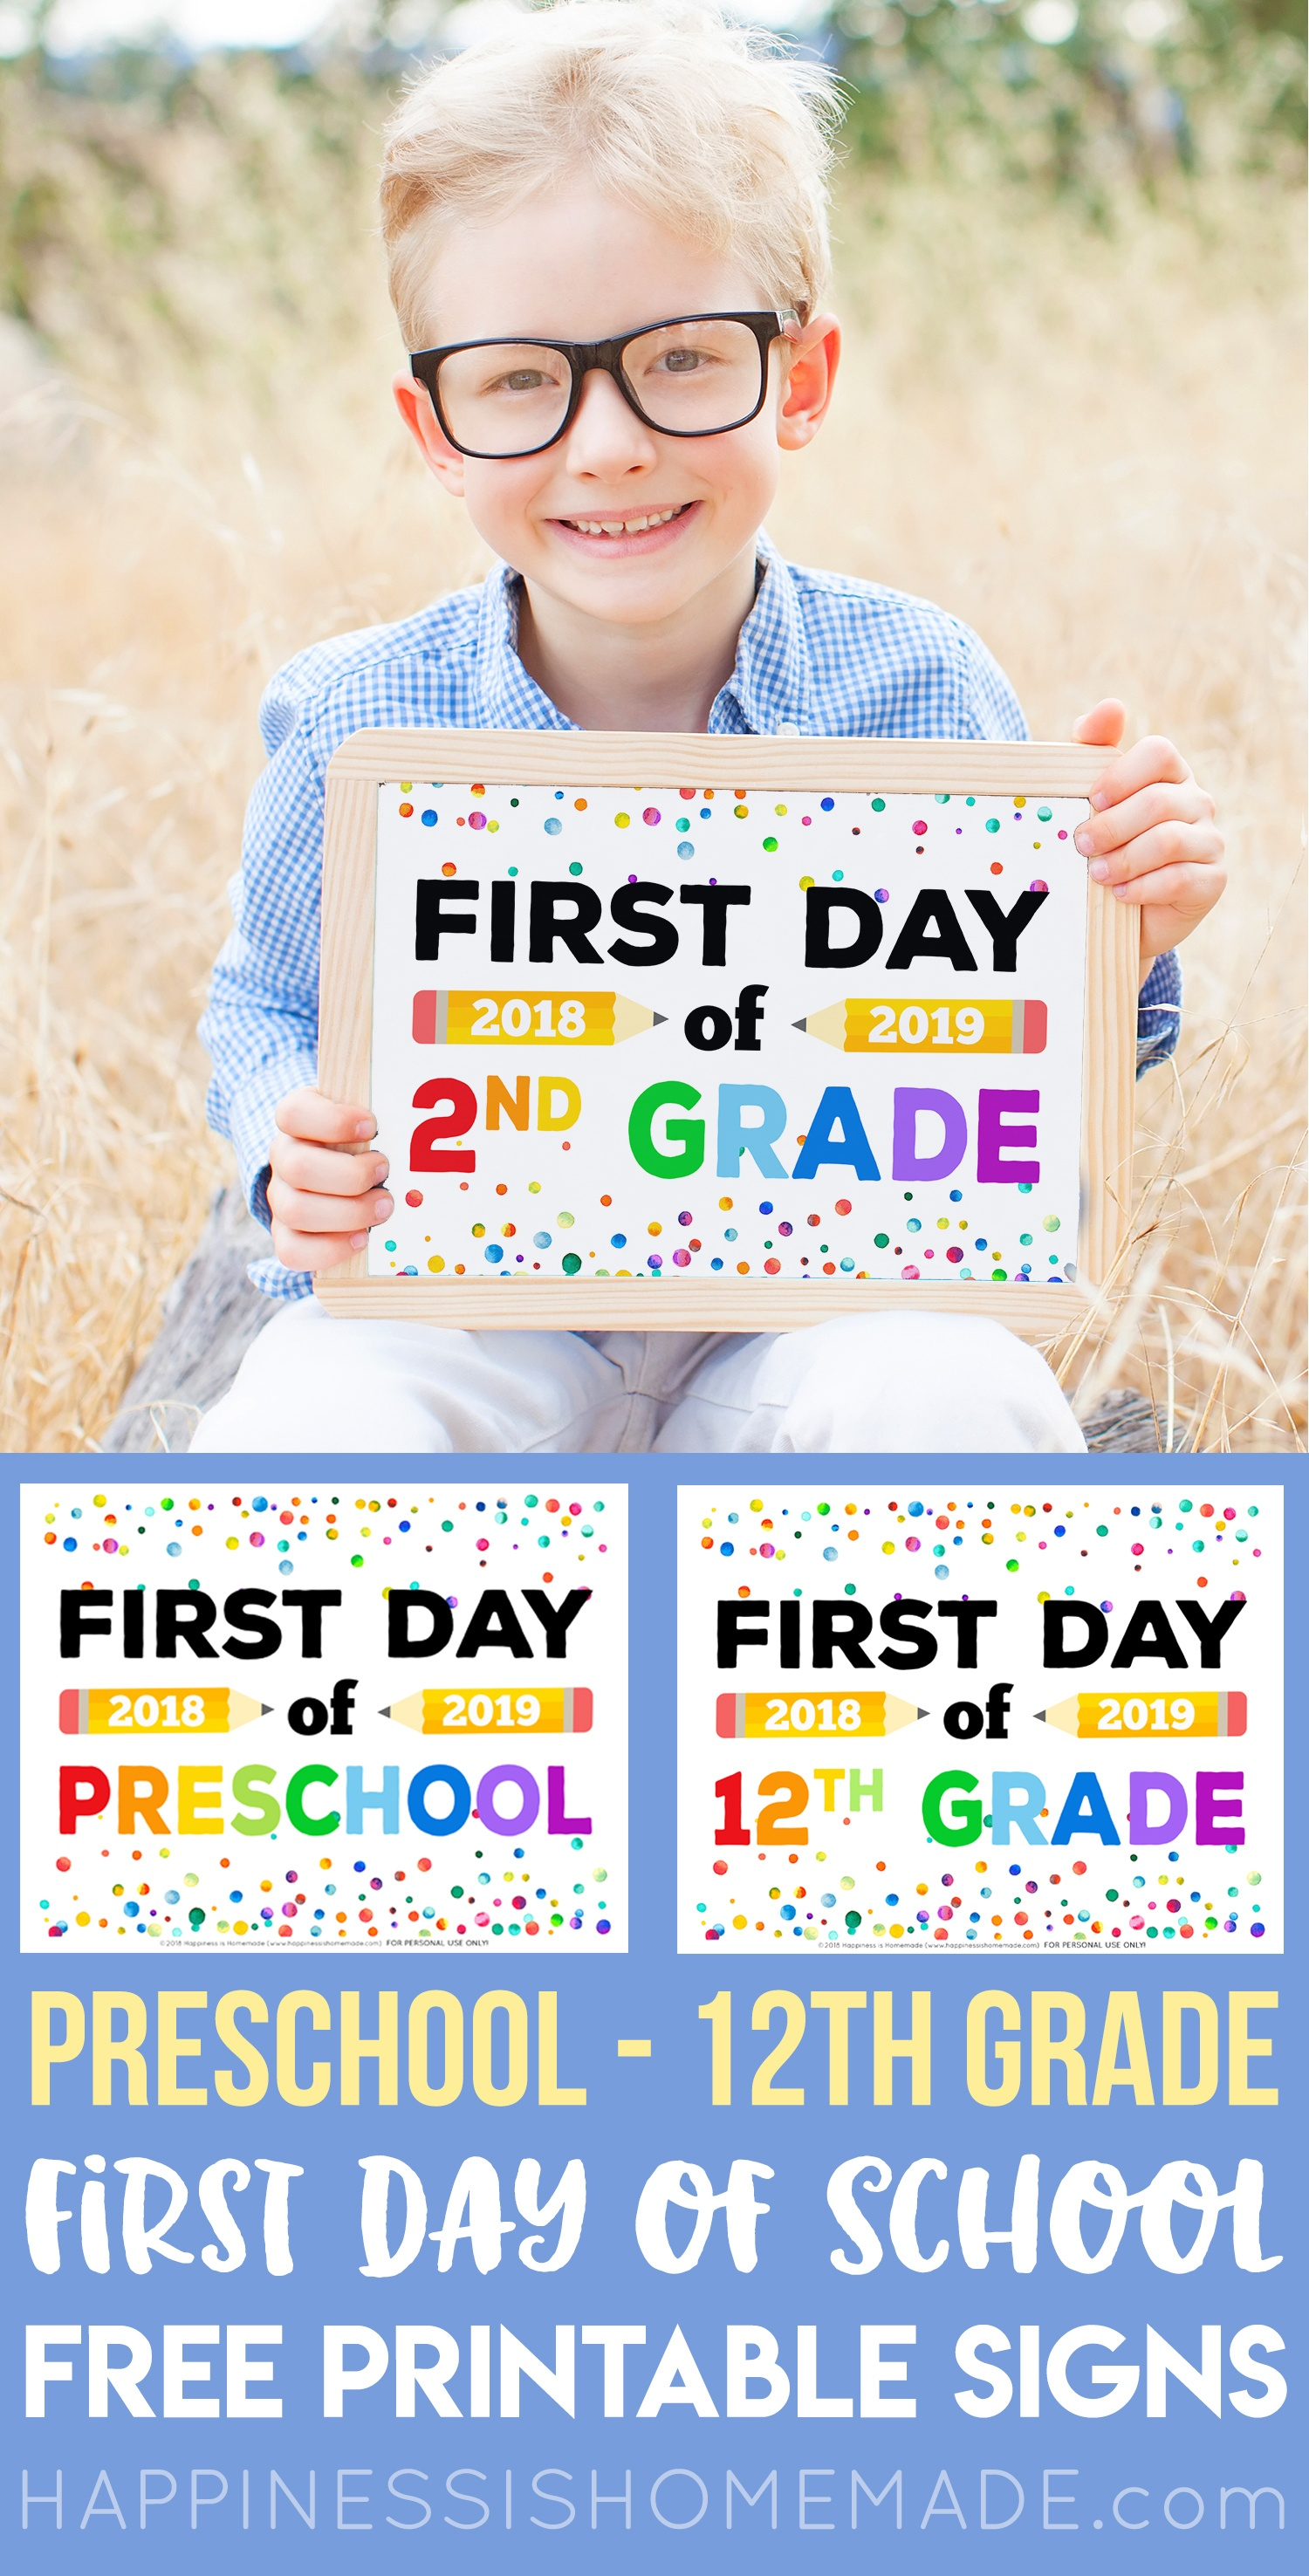 First Day Of School Signs - Free Printables - Happiness Is Homemade - Free Printable First Day Of School Signs